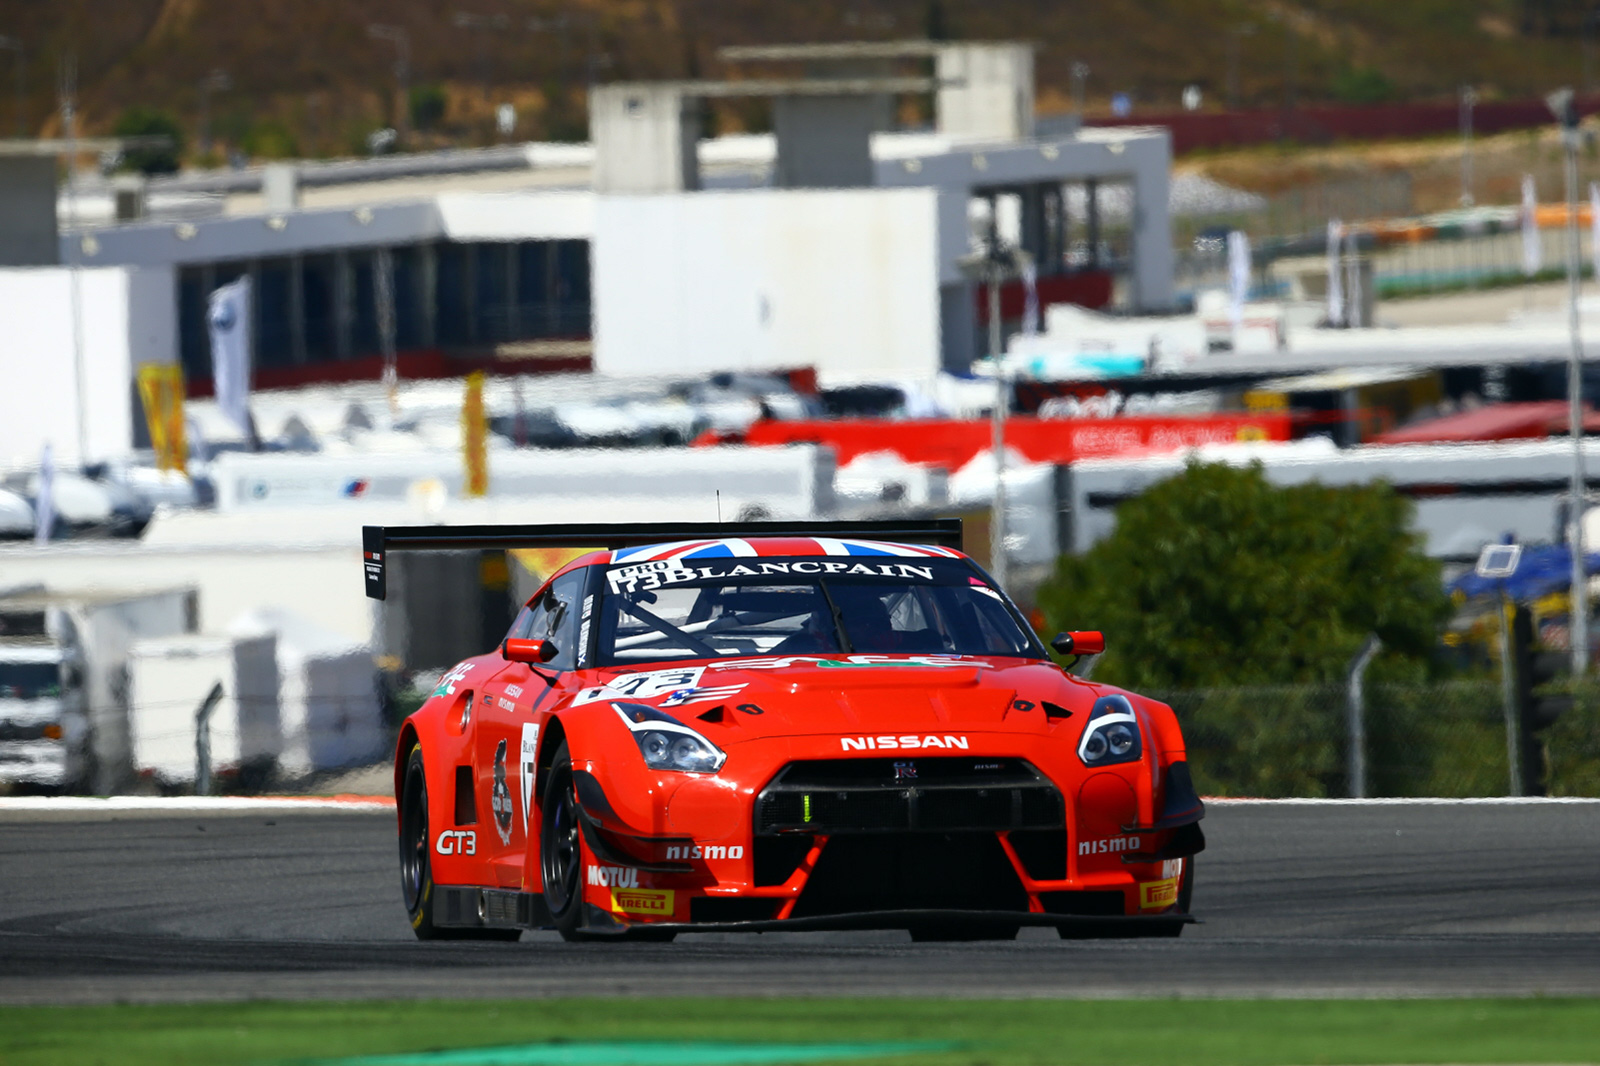 Round six of the Blancpain Sprint Series will take place over the weekend 3rd/4th October at Misano in Italy.